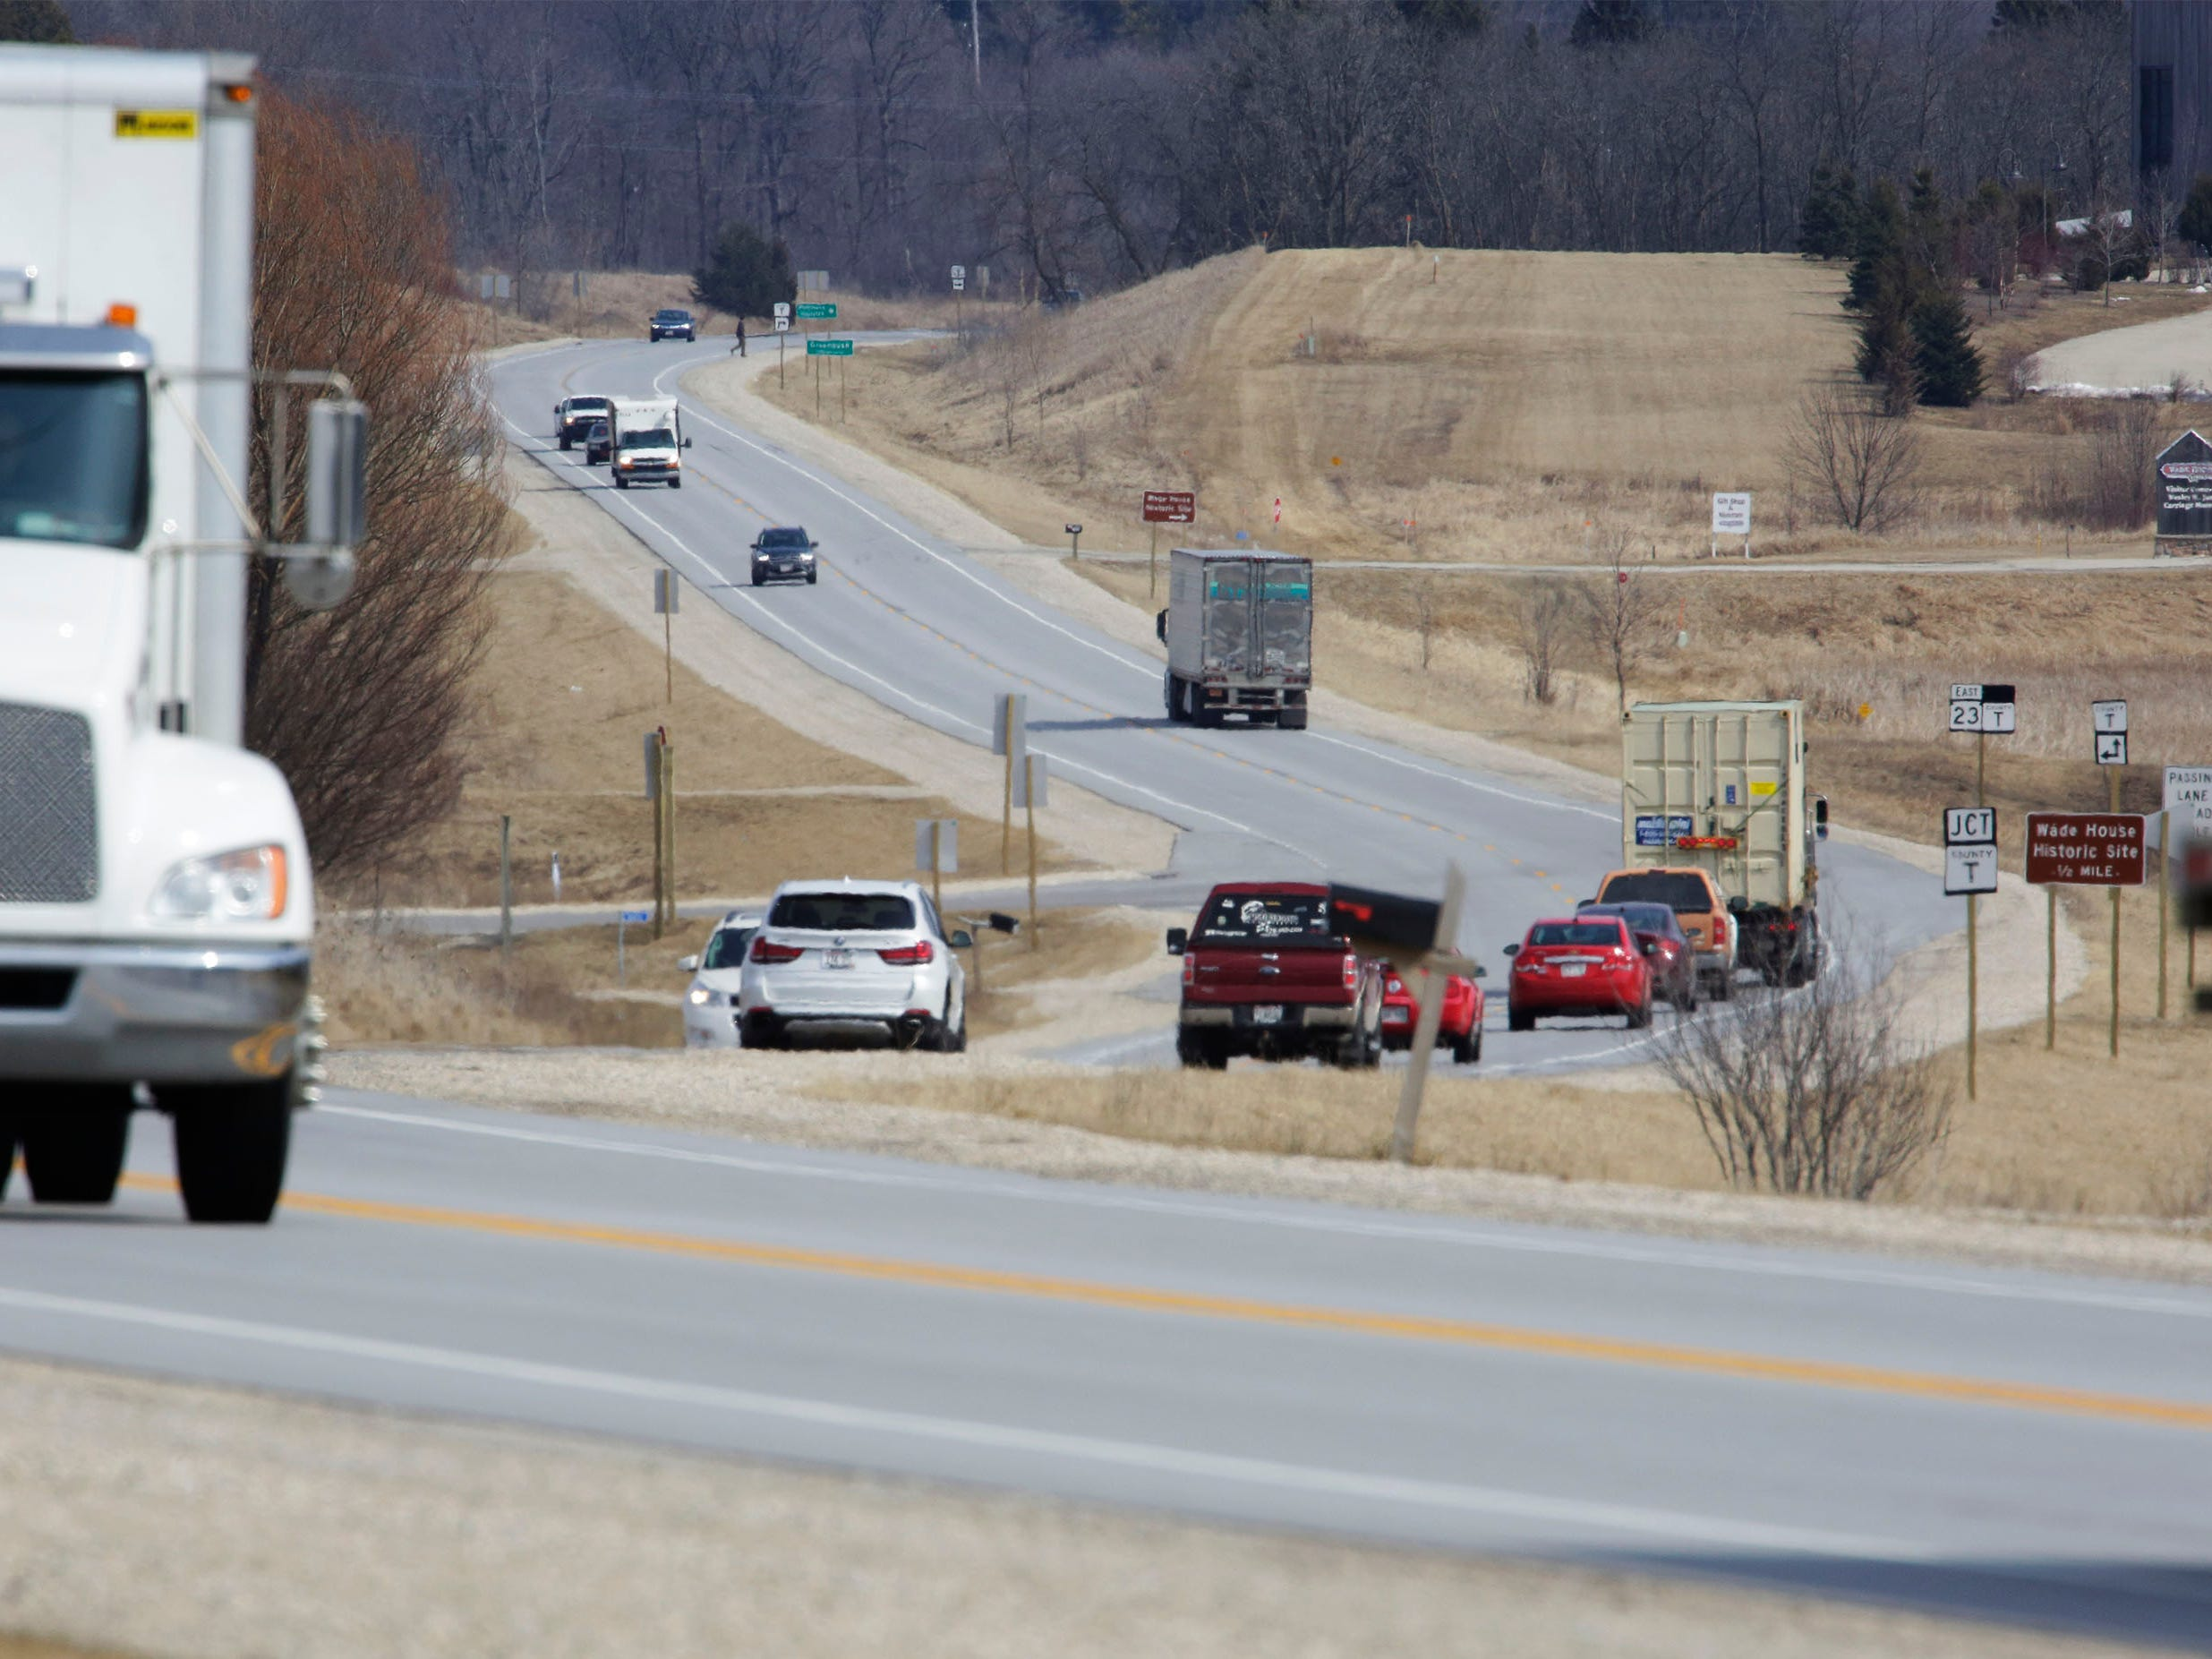 Trucks and cars travel on state Highway 23, Wednesday, March 27, 2019, near Greenbush, Wis.